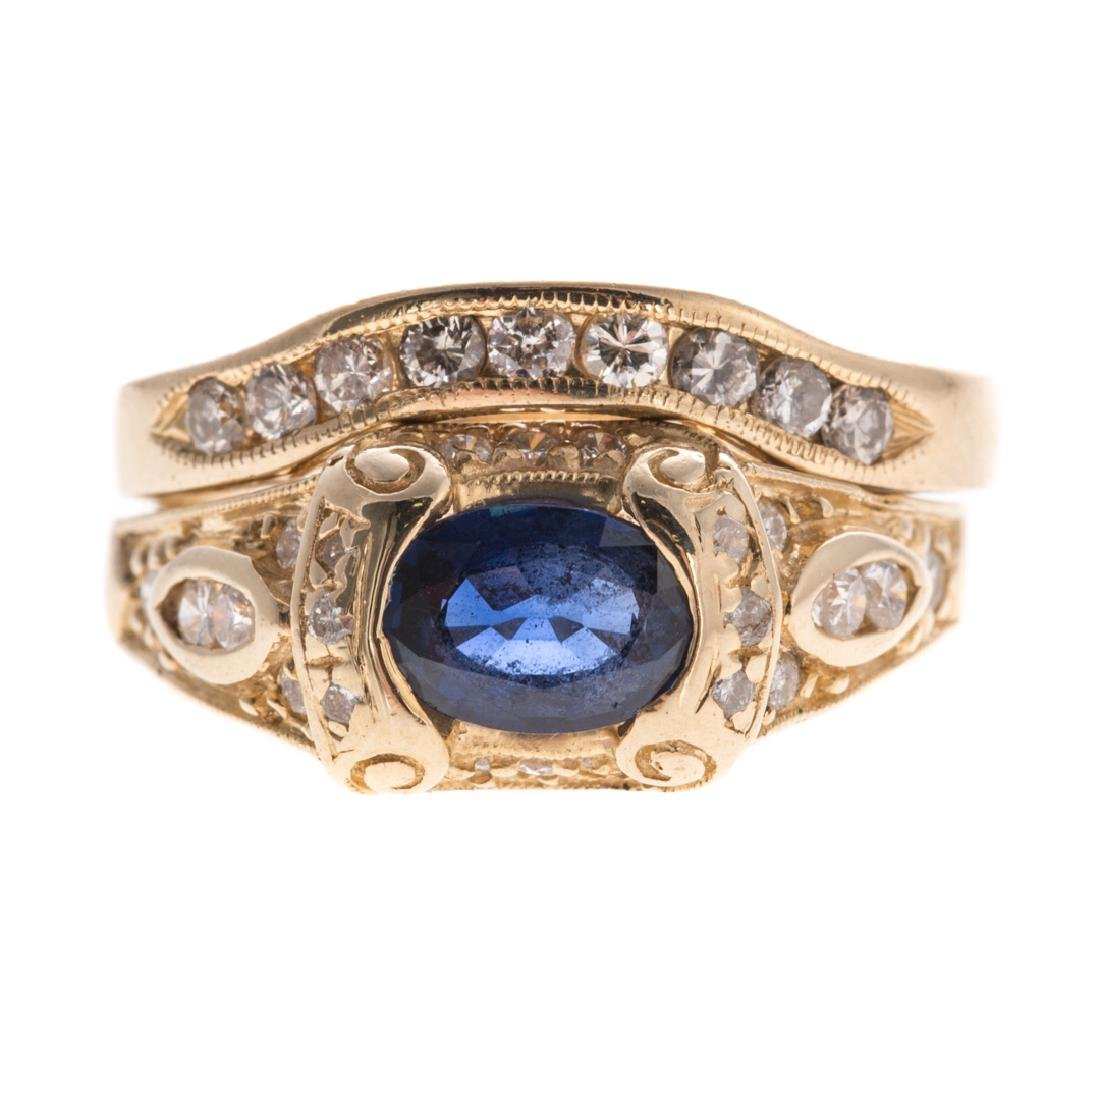 A Lady's Sapphire & Diamond Engagement Set in 14K